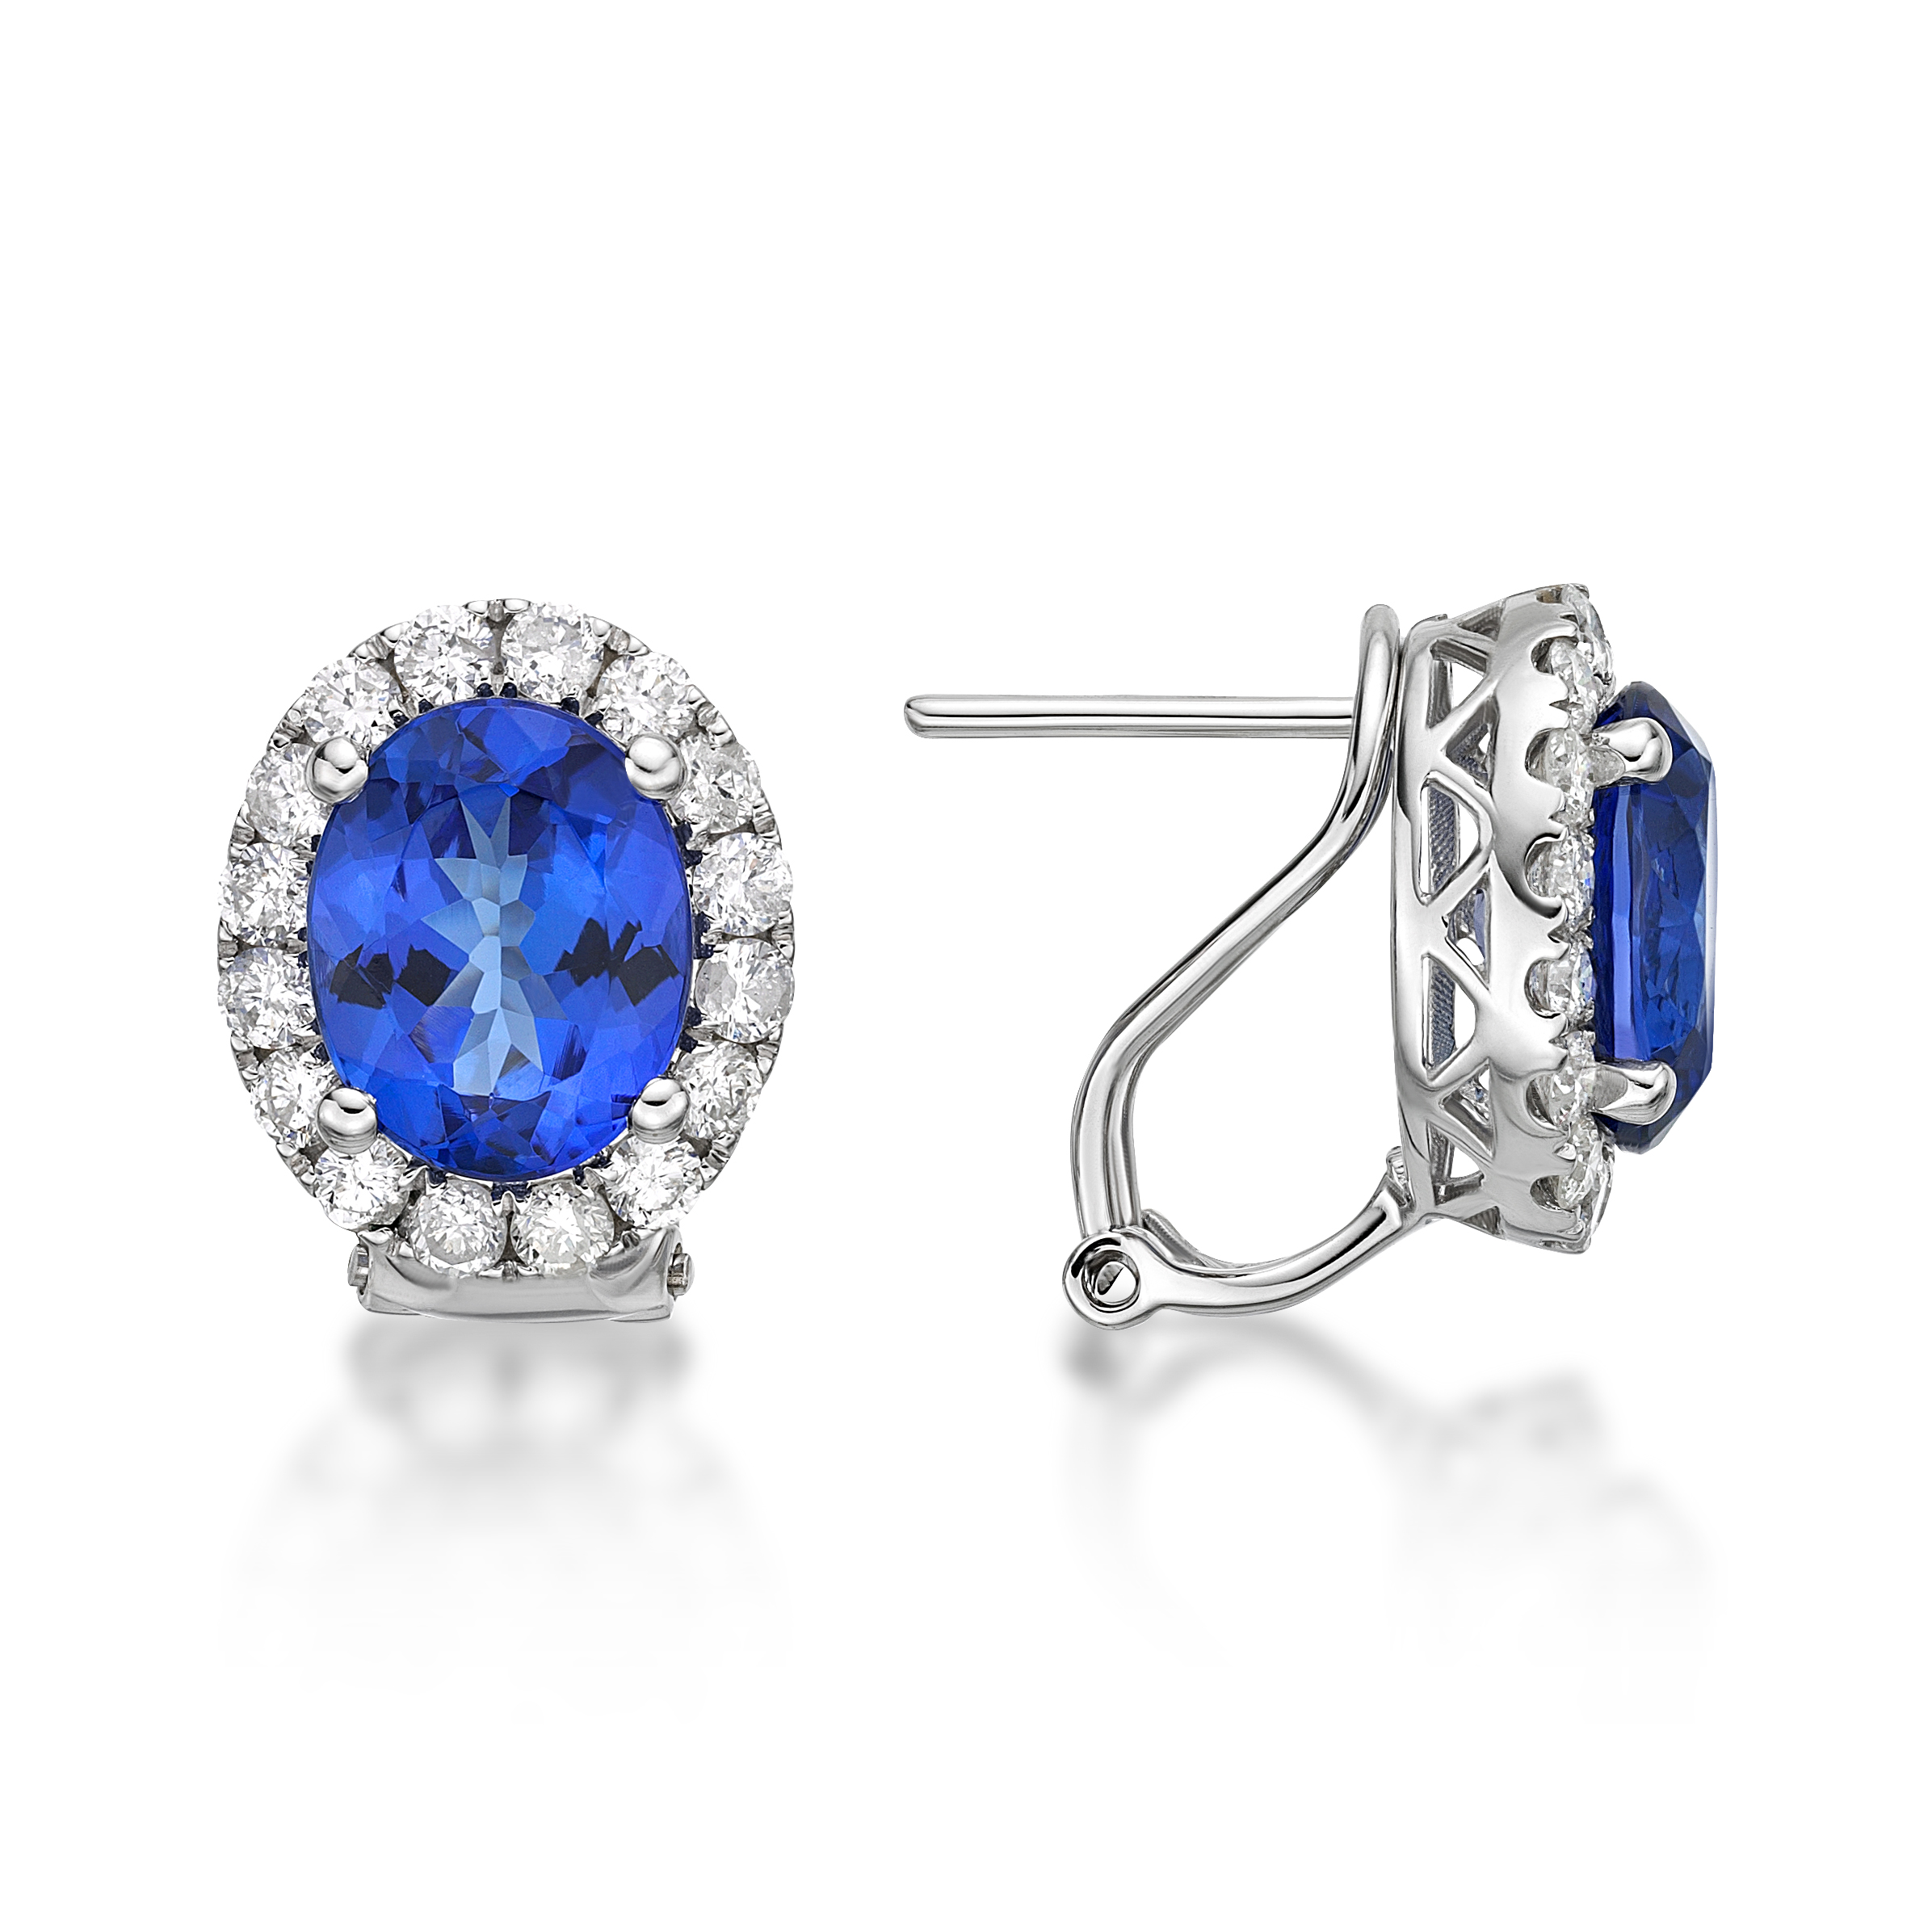 com a tanzanite gemstones are we selection vast of gems toptanzanite pin have speciality